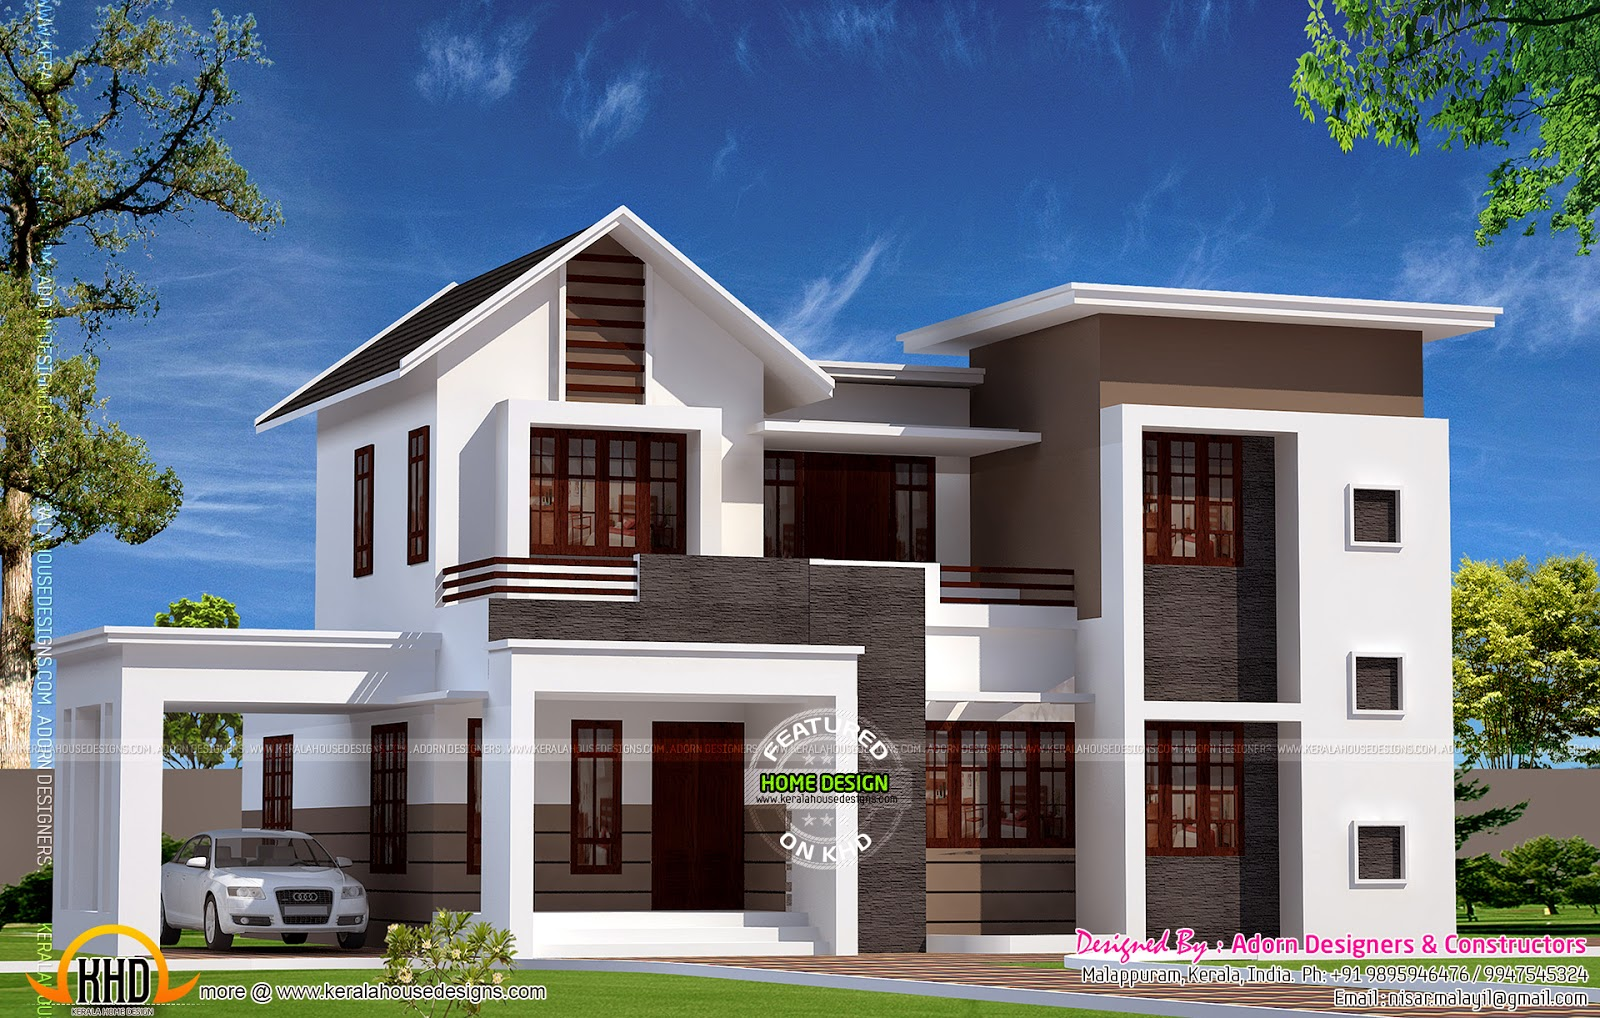 of bedrooms 4 no of bathrooms 4 design style modern mix sloping roof